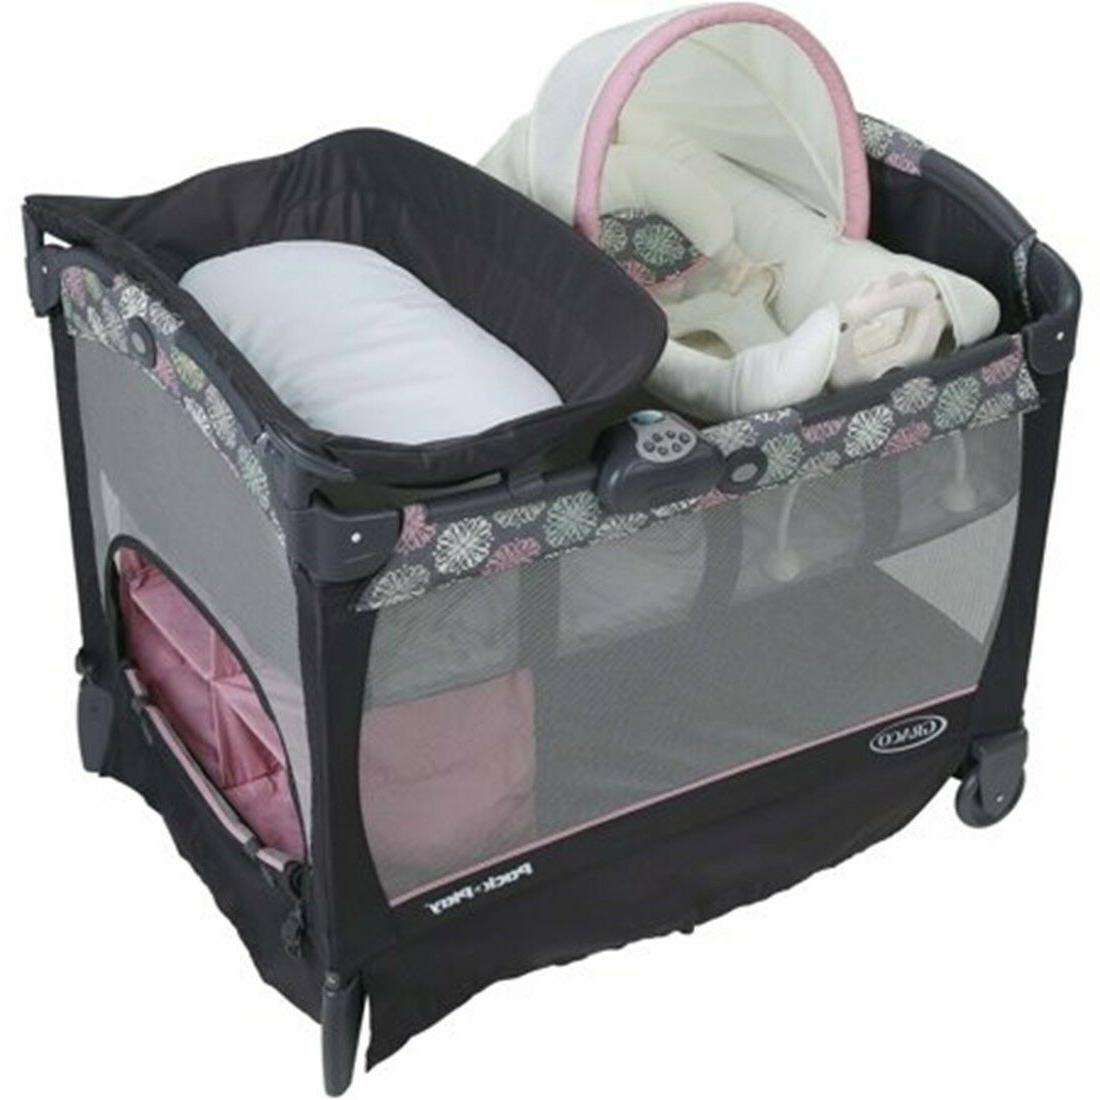 Baby Travel with Seat Fast Fold